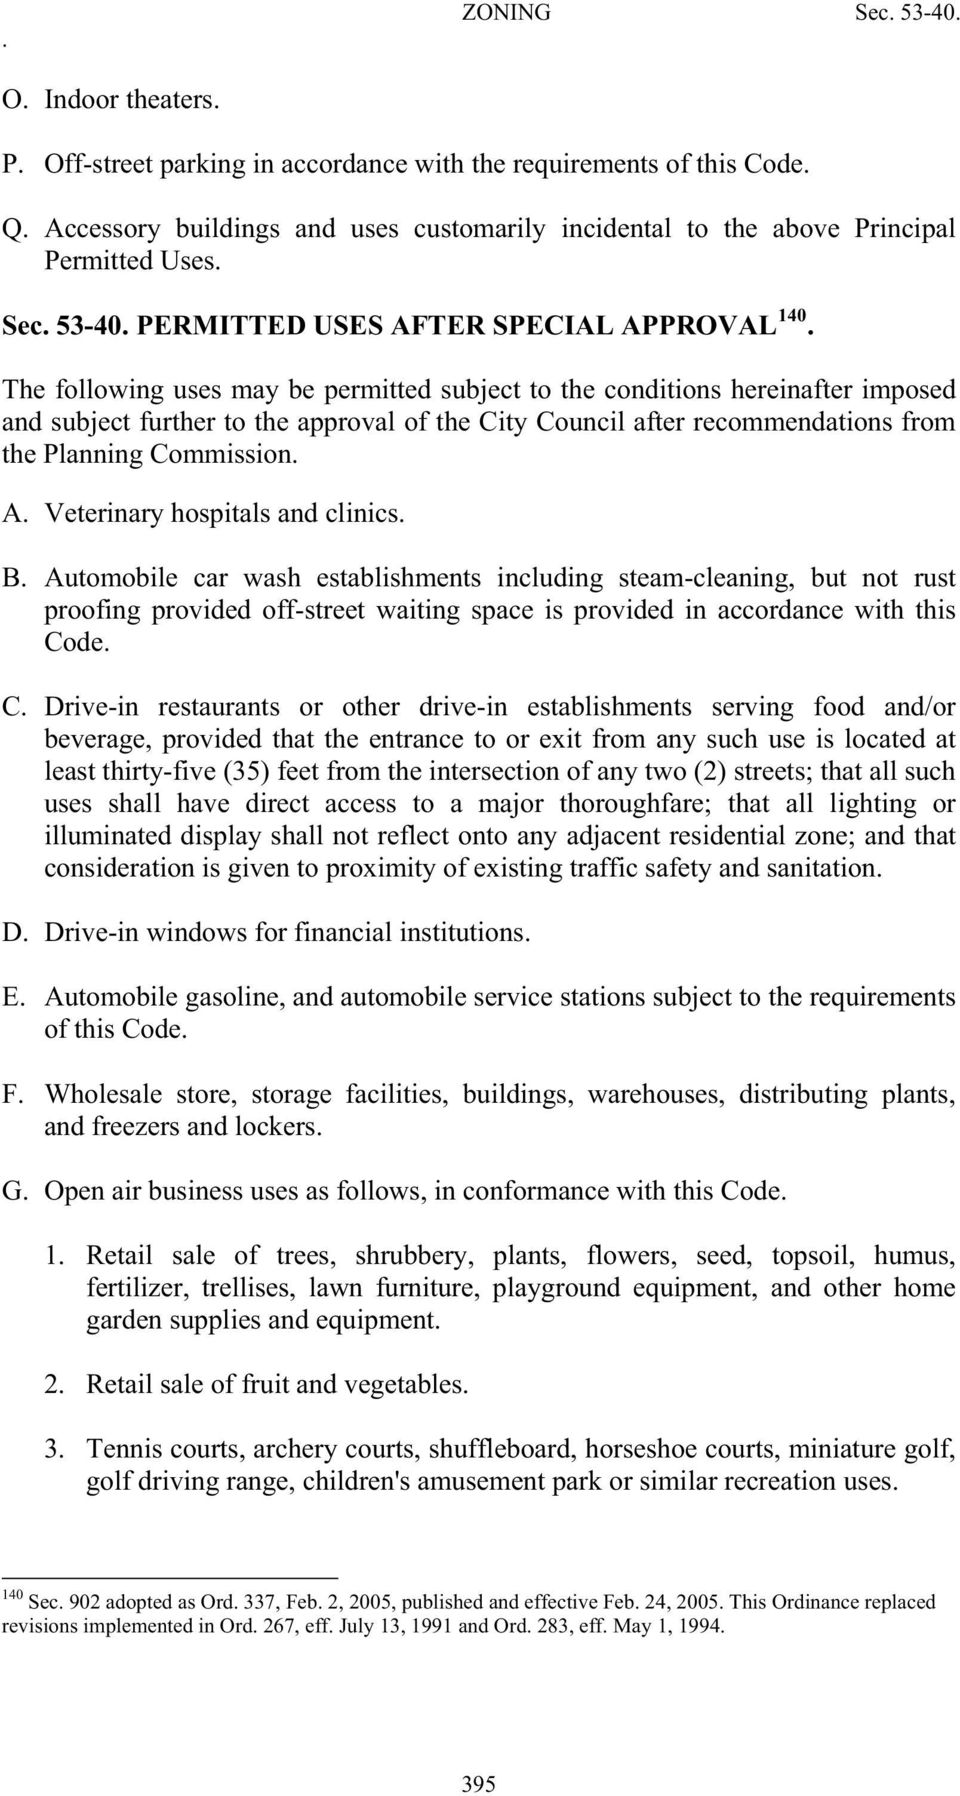 The following uses may be permitted subject to the conditions hereinafter imposed and subject further to the approval of the City Council after recommendations from the Planning Commission. A.